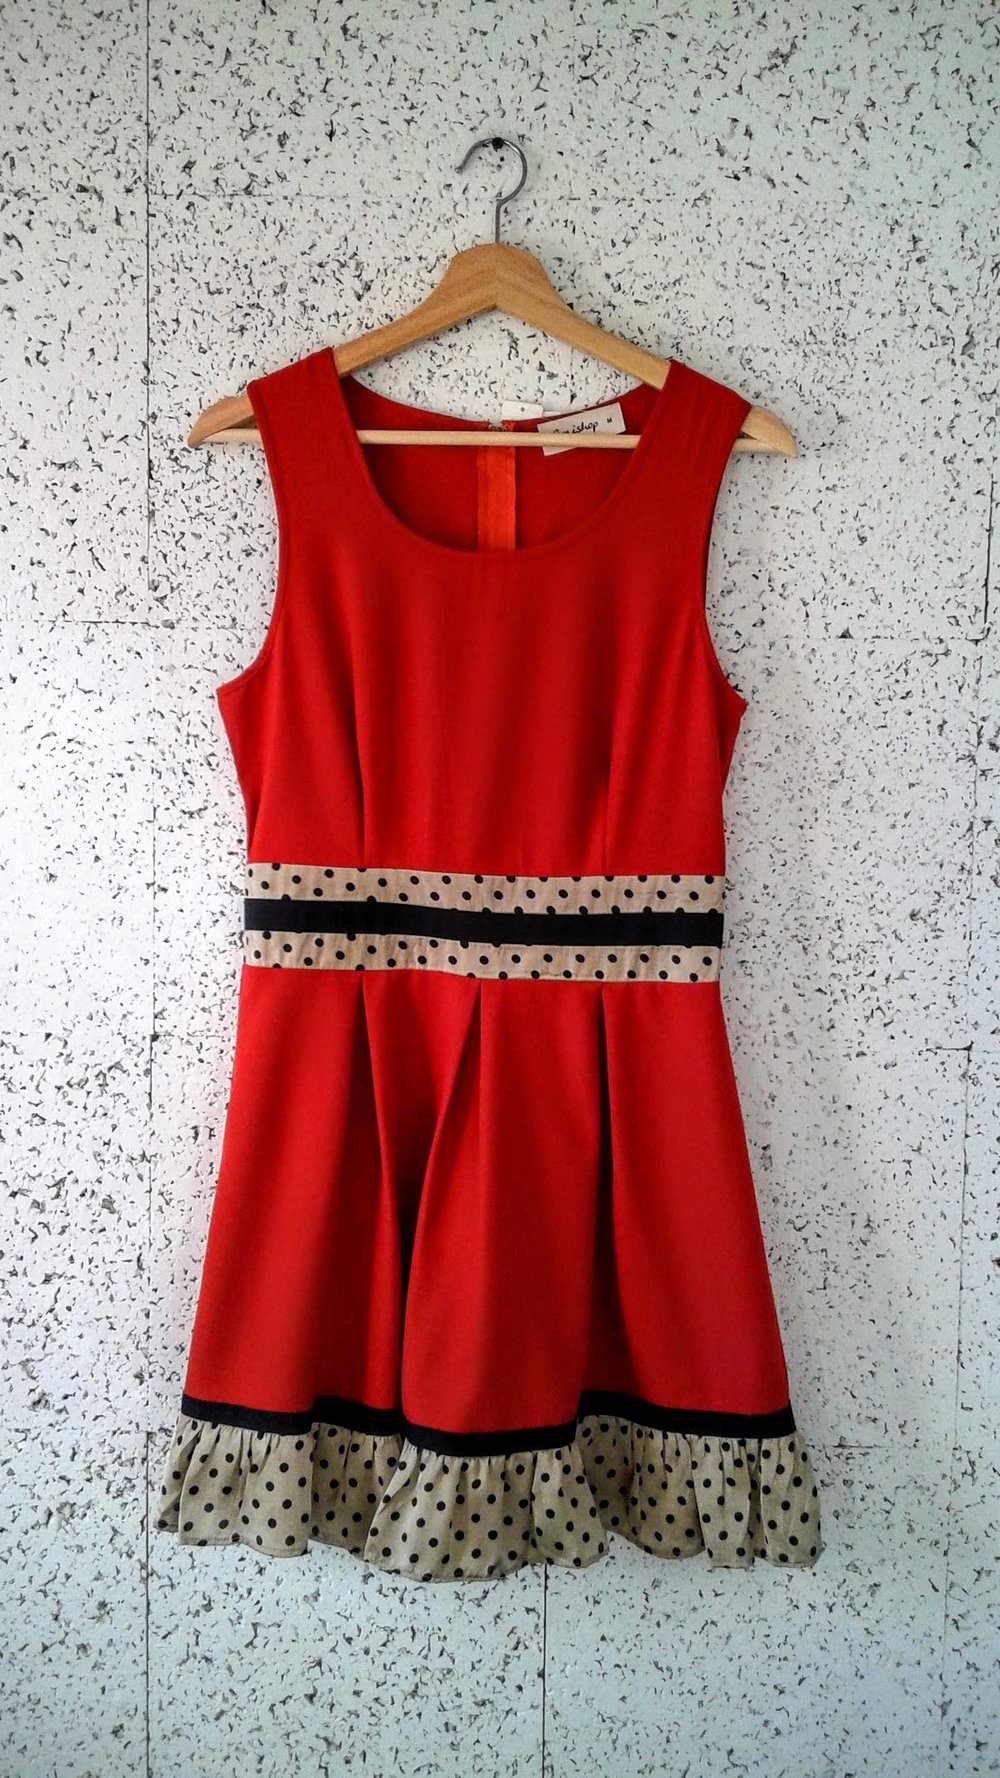 Eunishop dress (NWT); Size M, $28